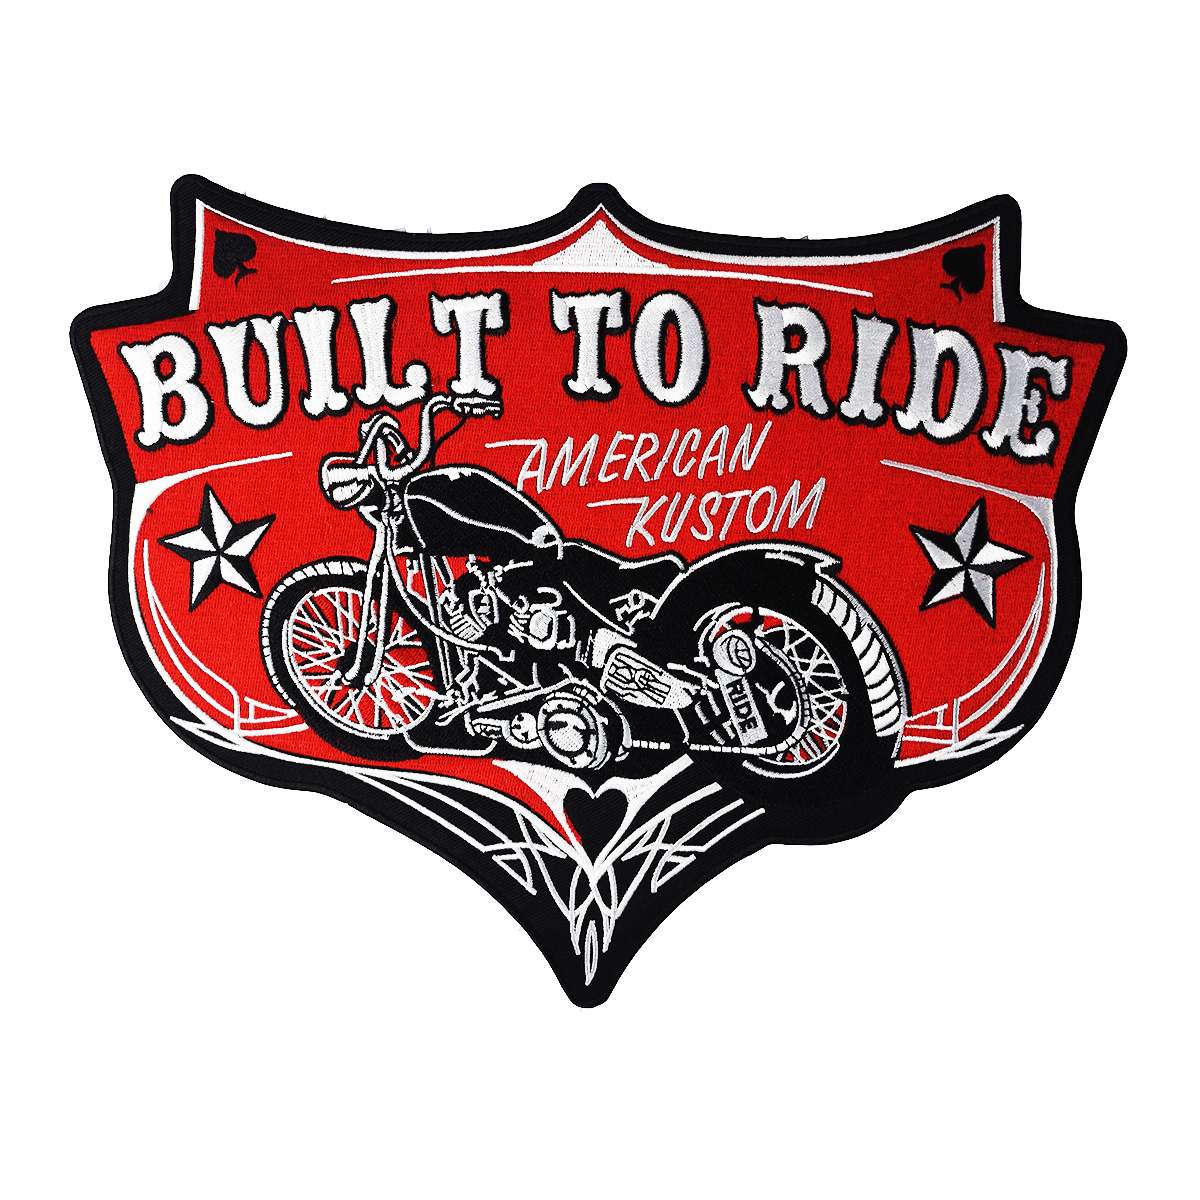 BUILT TO RIDE Large Back Size Motorcycle for Clothing Jacket Vest Iron on Sew on Biker Embroidered Patches